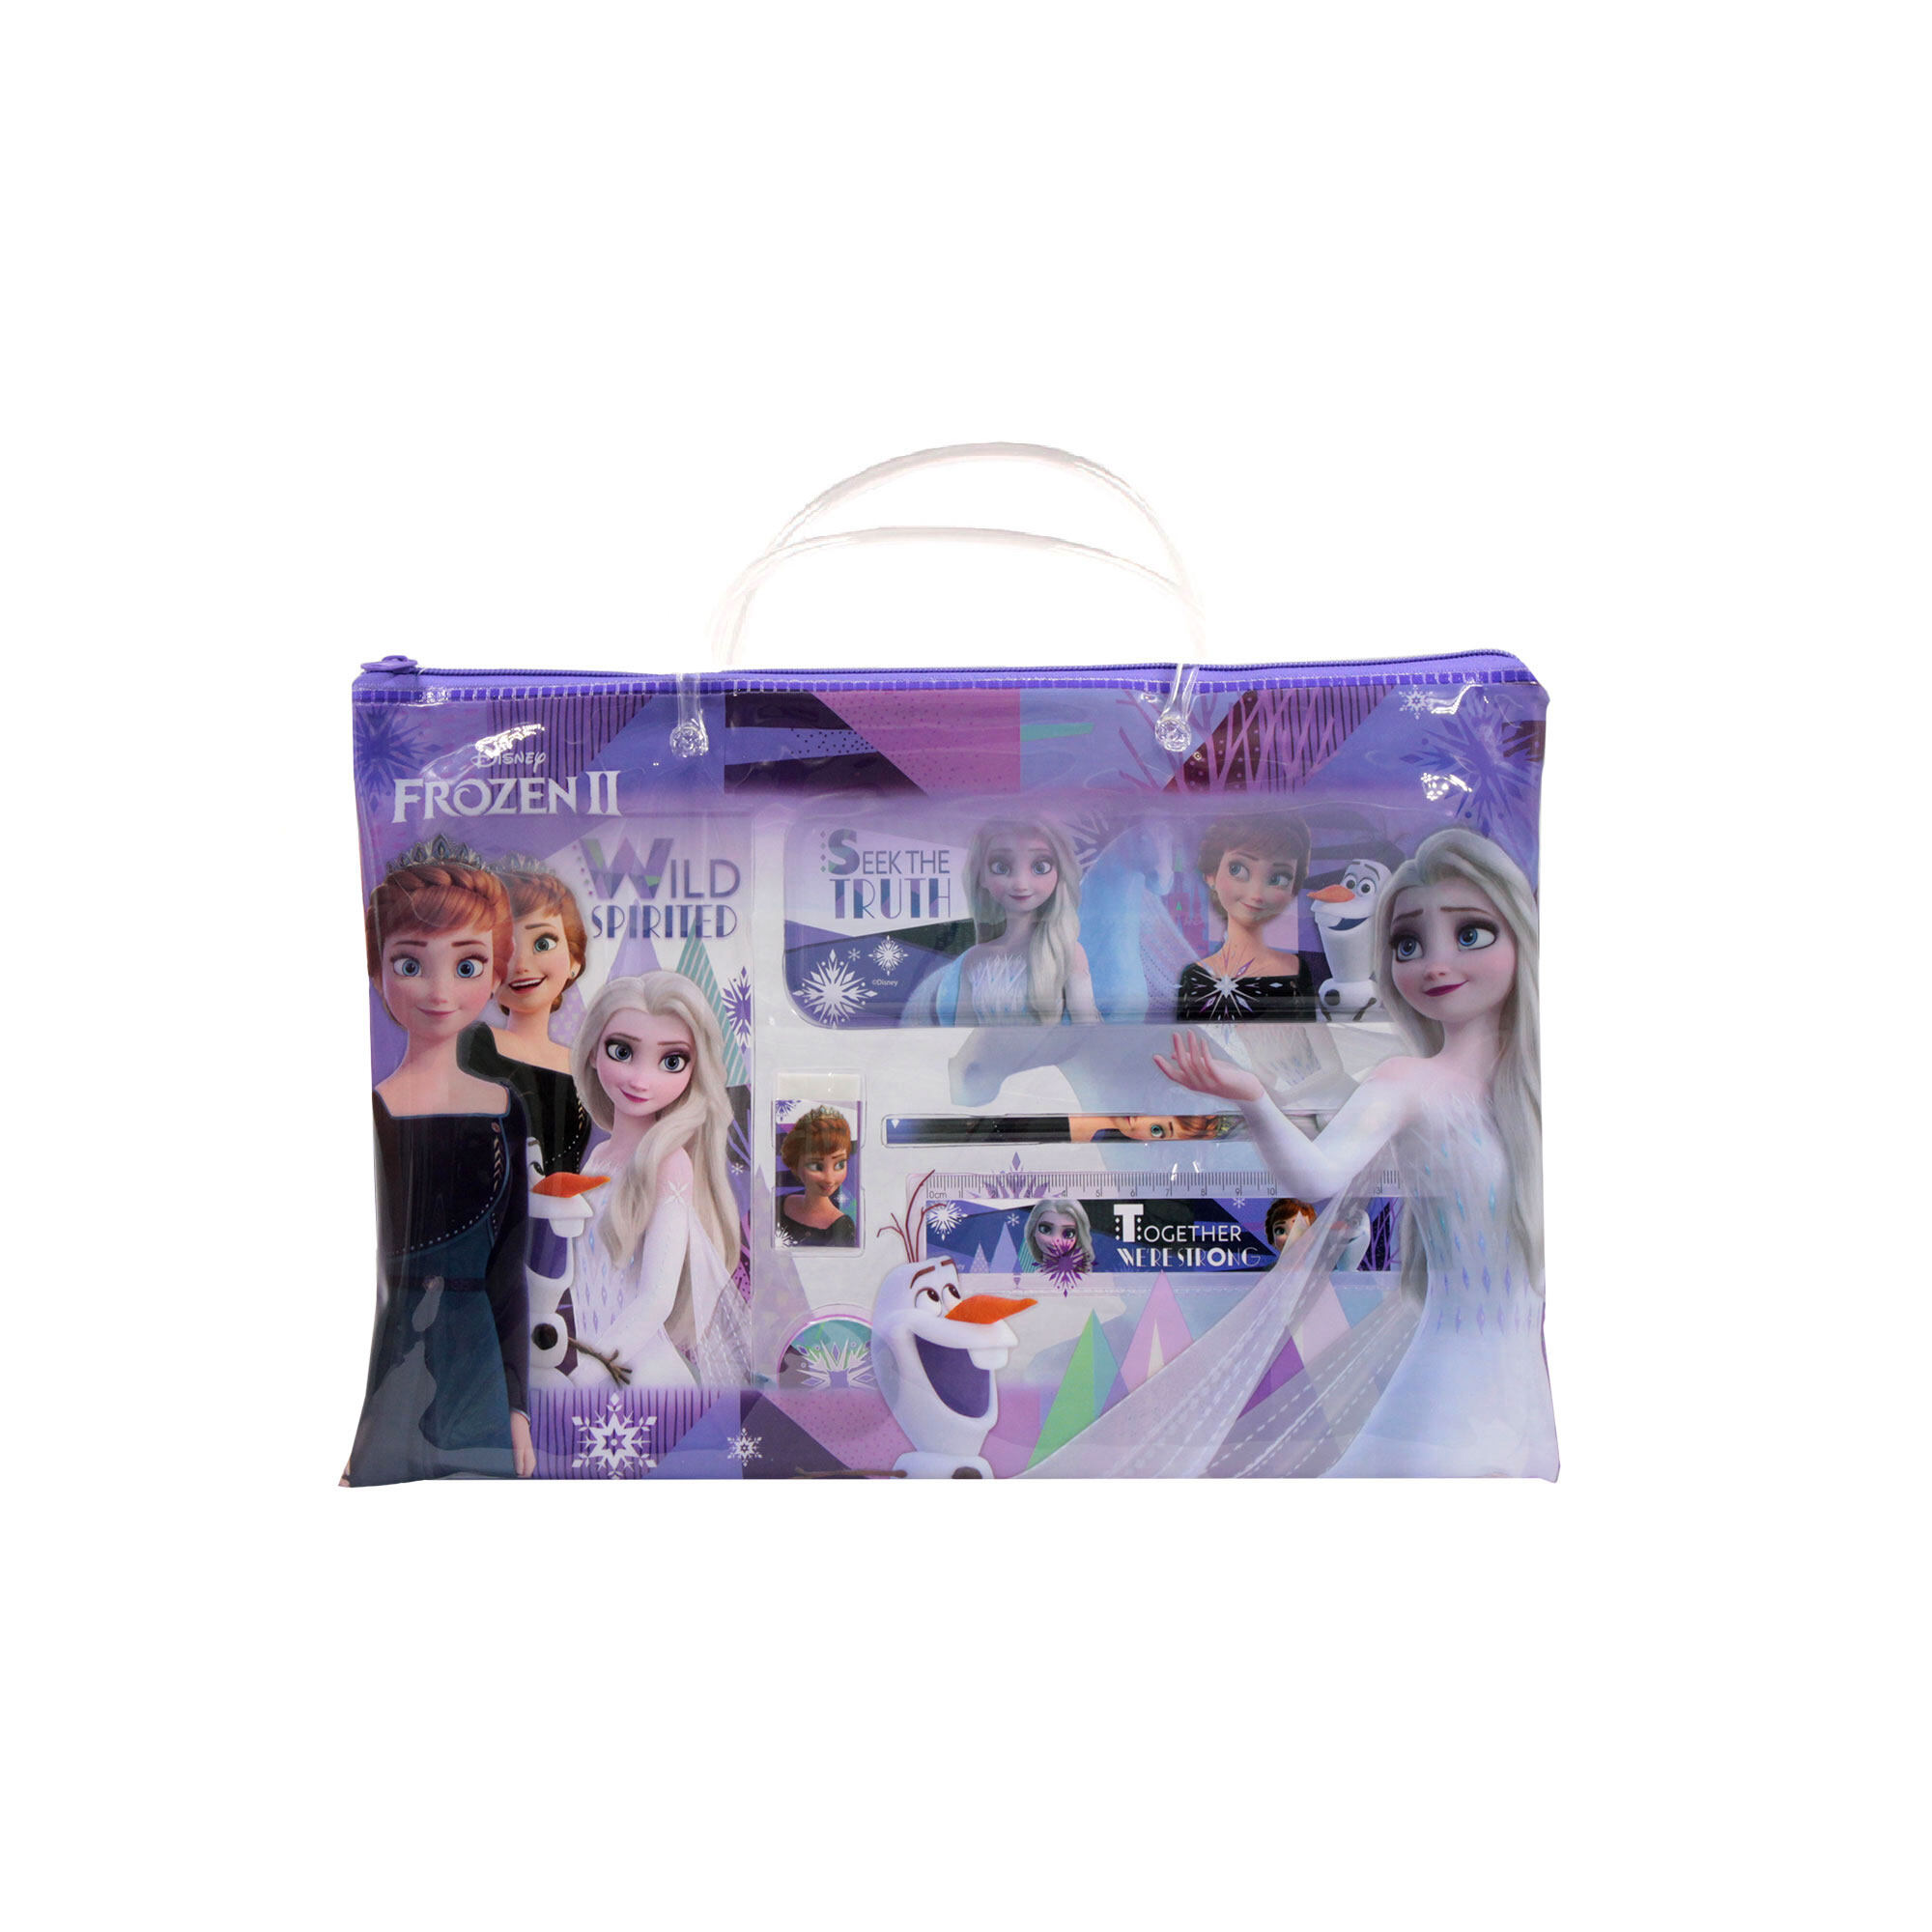 Disney Princess Frozen 2 :  6 In 1 Children'S School Stationery Set With Pencil Case, Pencil, Eraser, Noted Book , Ruler & Sharpener